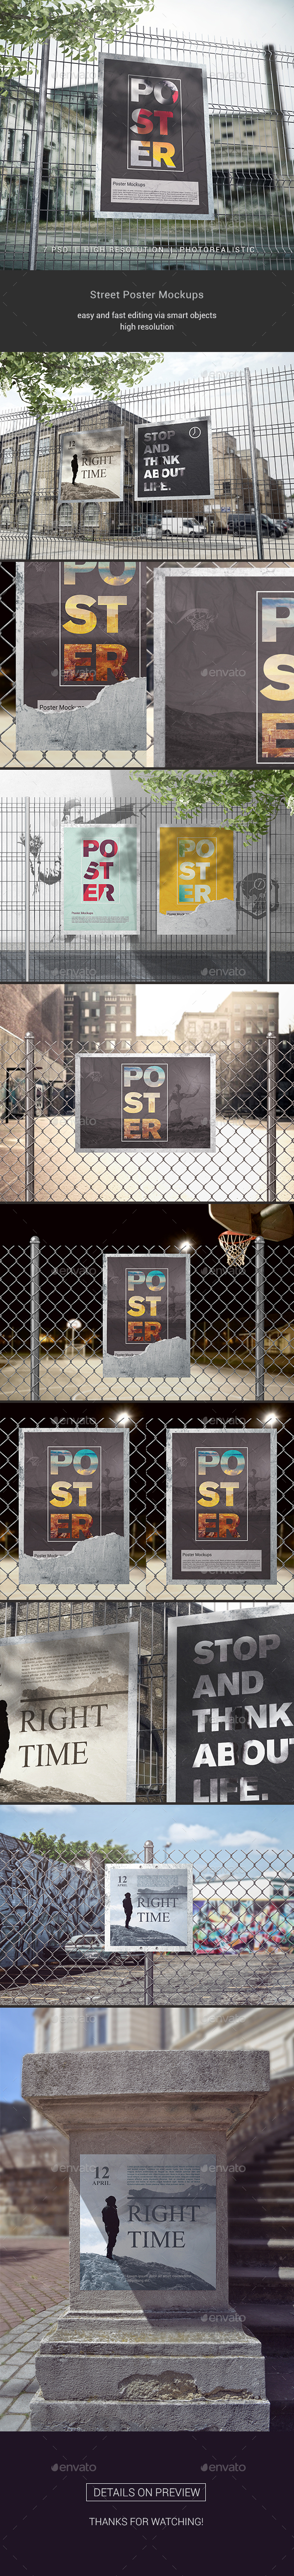 Street Poster Mockups - Posters Print